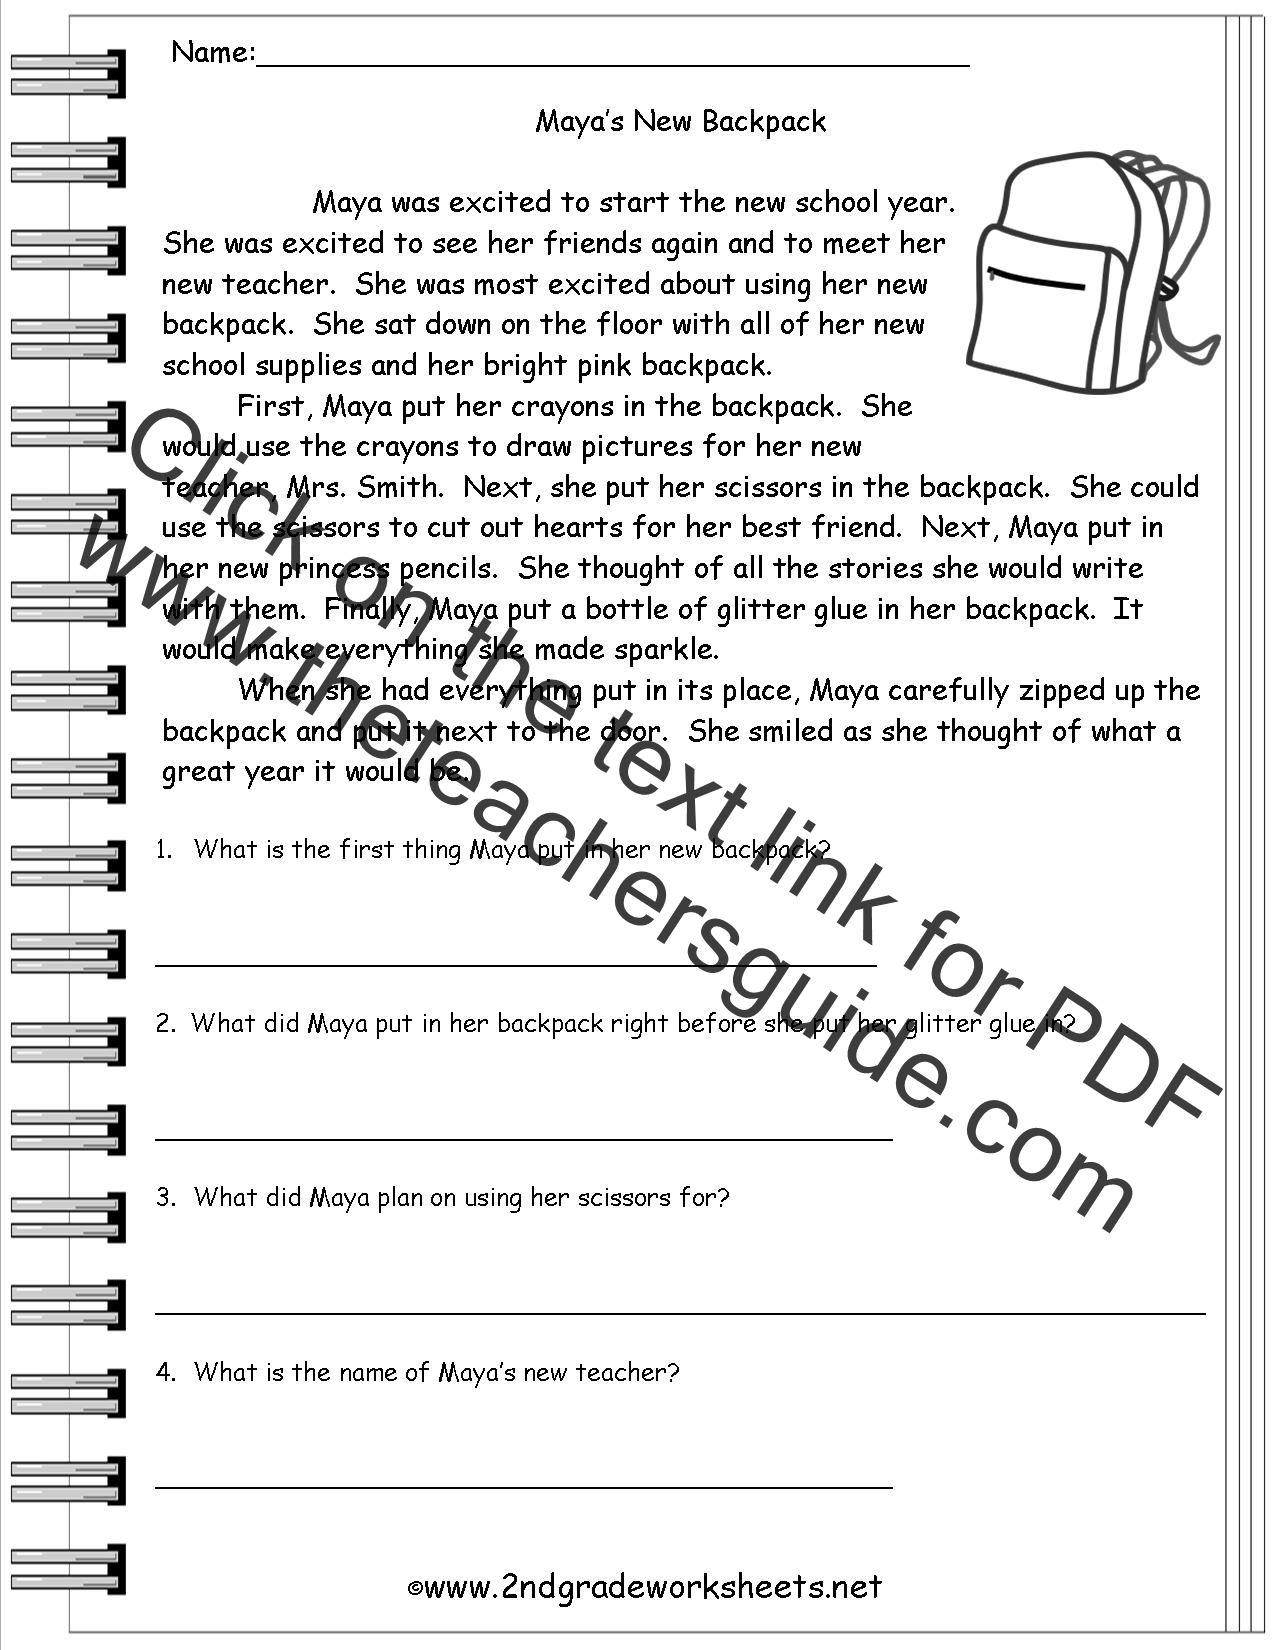 Worksheets 2nd Grade Ela Worksheets reading worksheeets worksheets